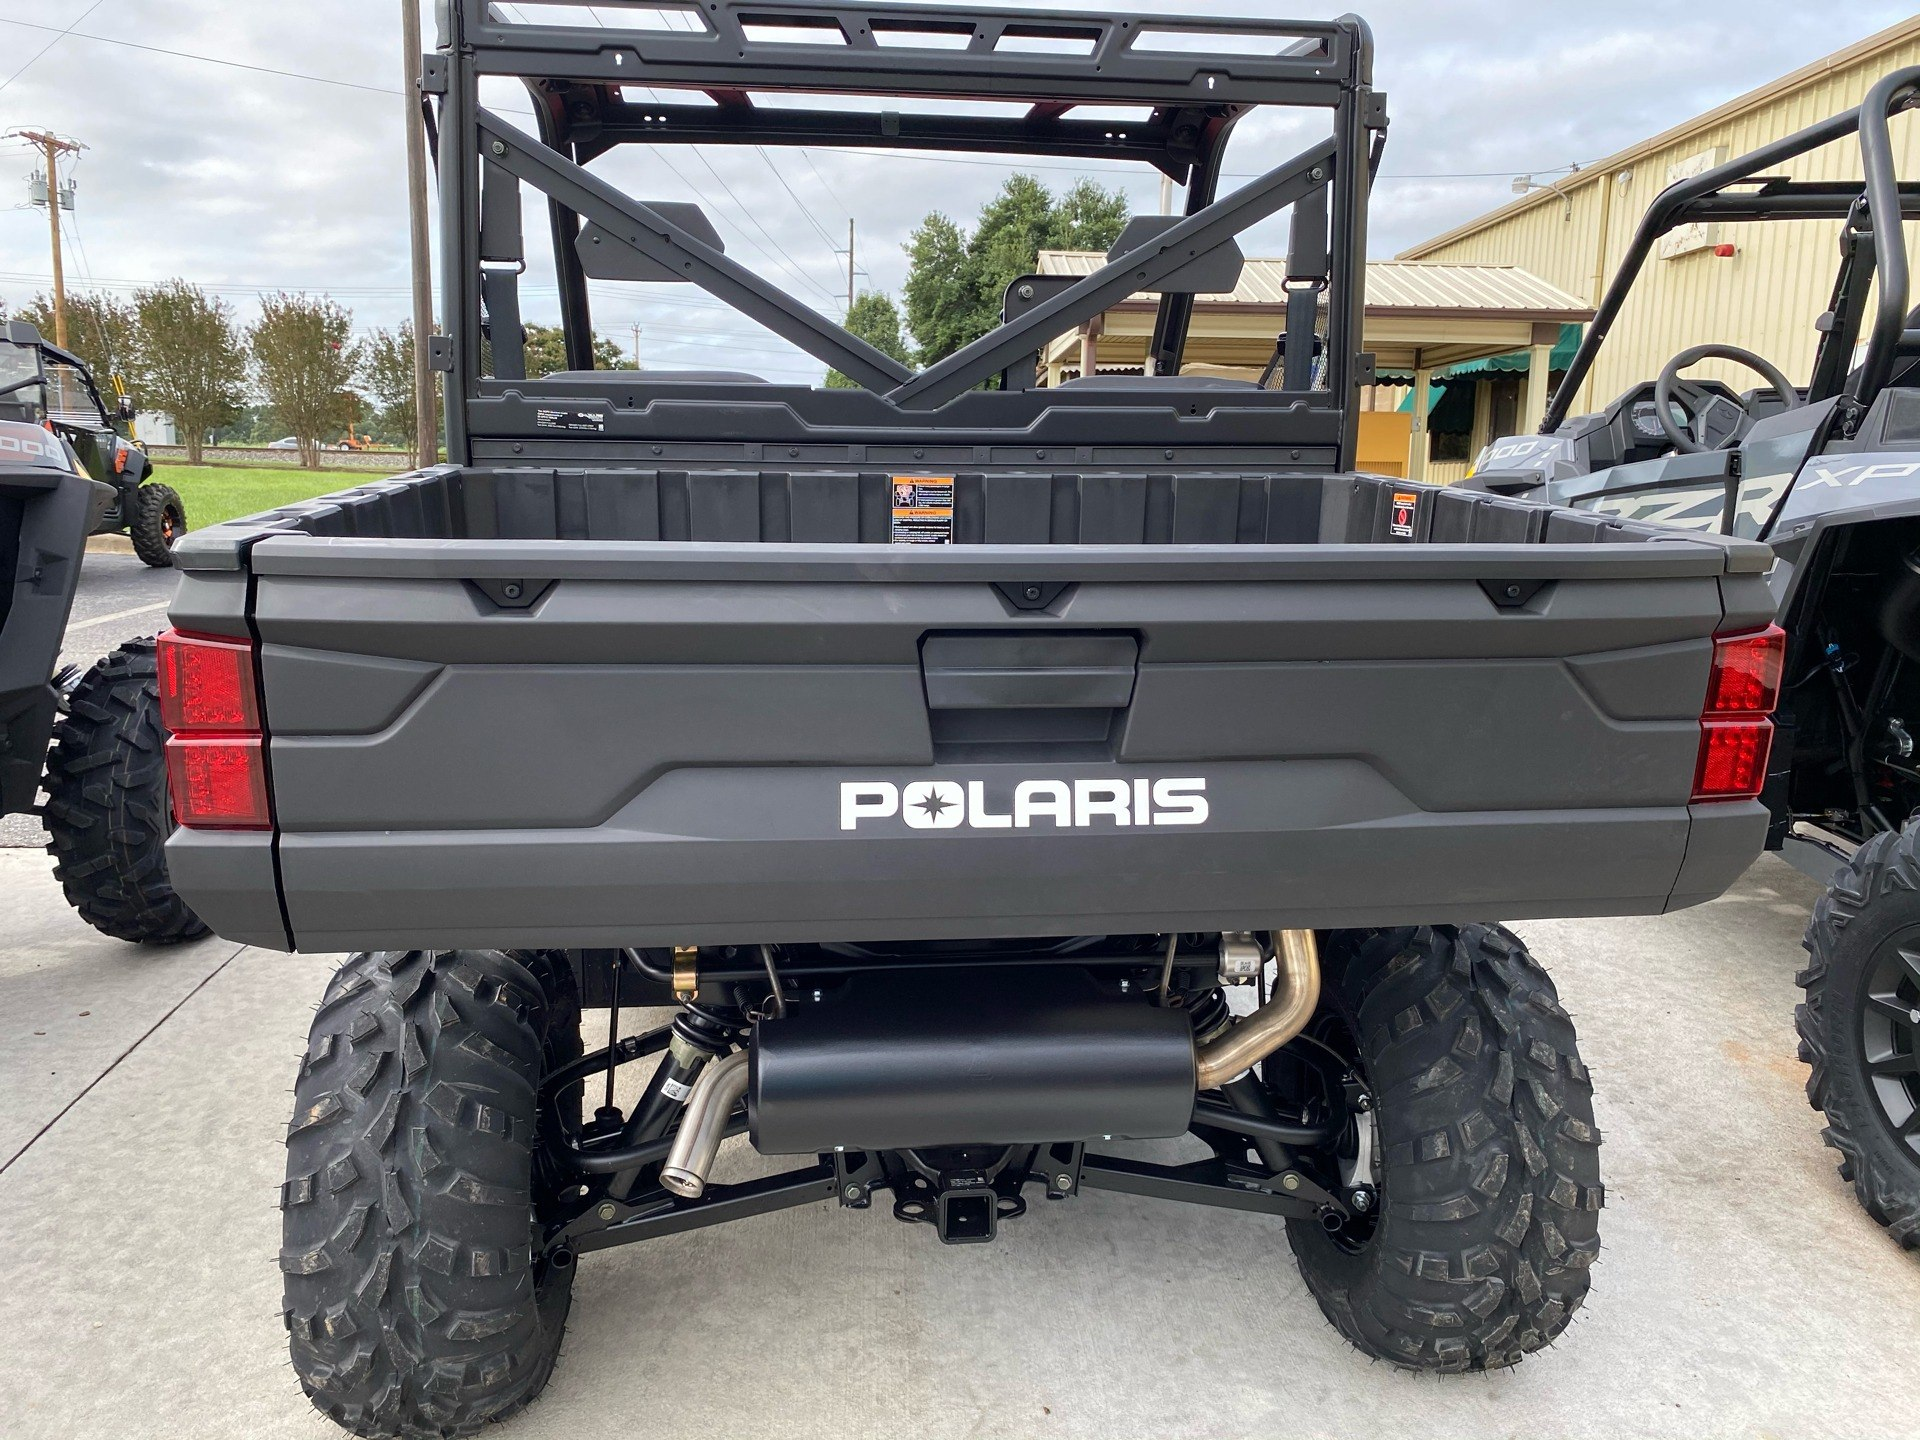 2021 Polaris Ranger 1000 EPS in Statesville, North Carolina - Photo 6